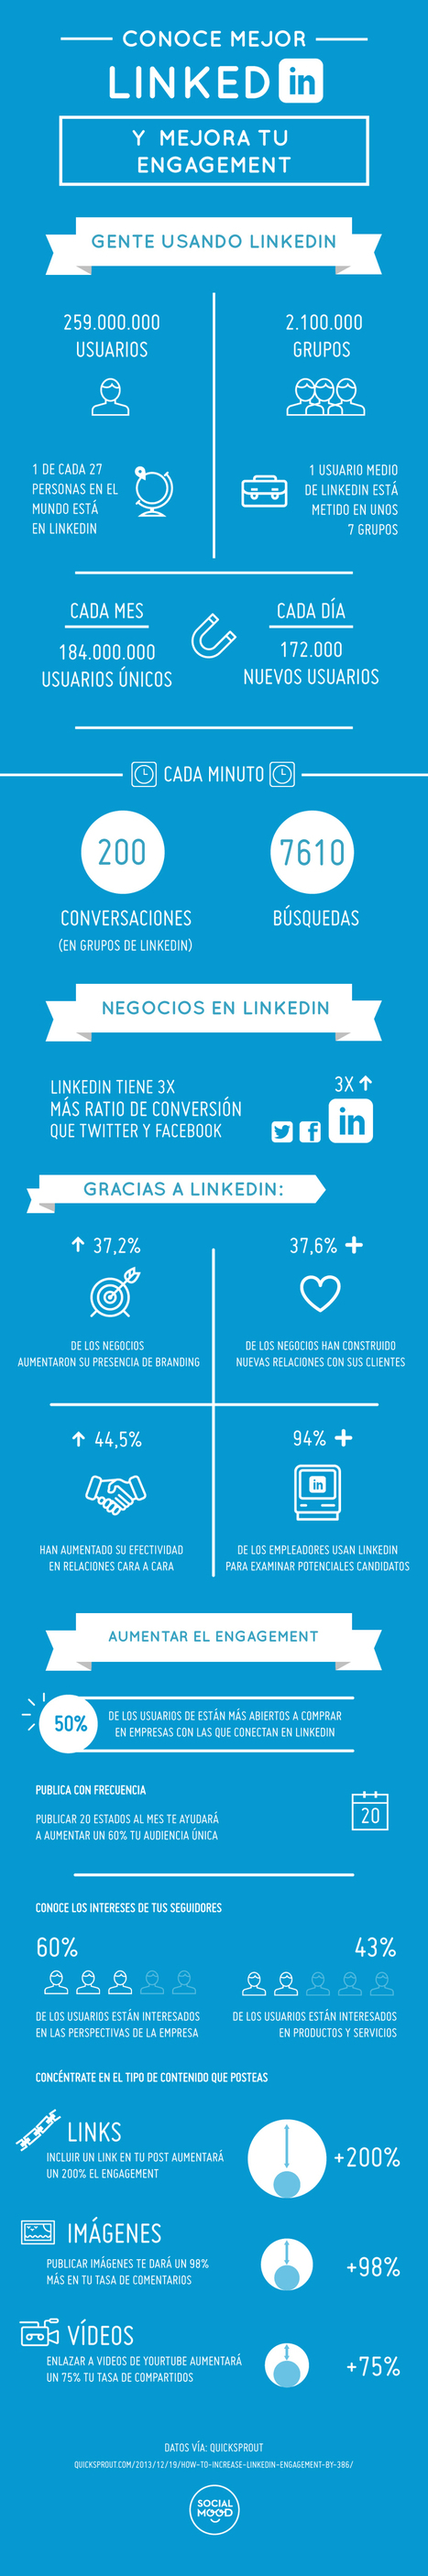 Conoce mejor Linkedin y mejora tu engagement #infografia #infographic #socialmedia | Social Media | Scoop.it